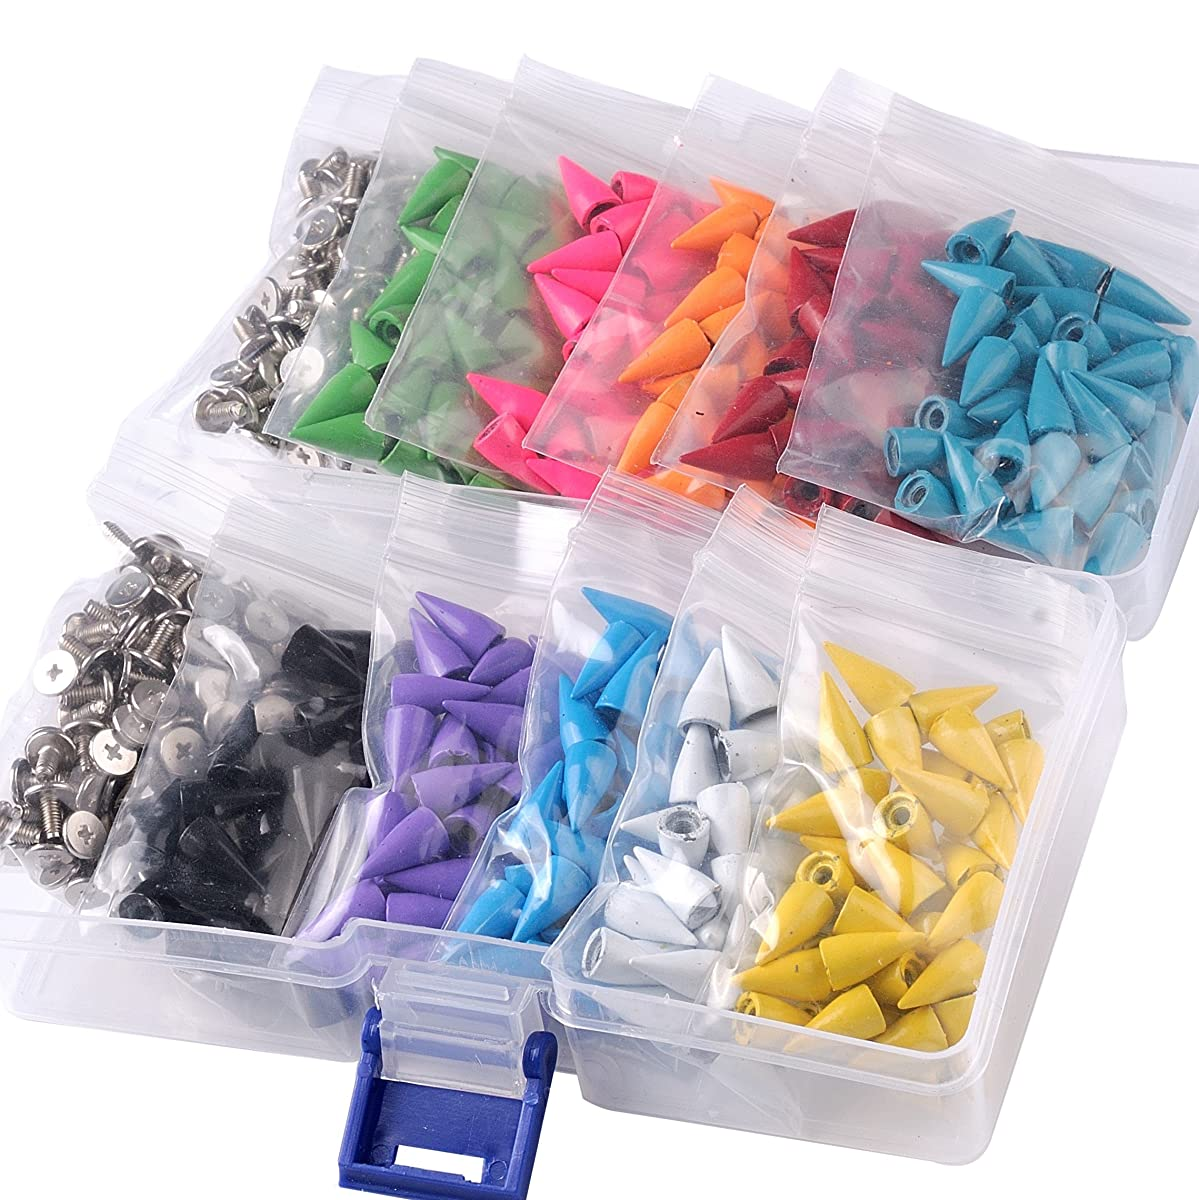 400pcs Mixed Colors Cone Spikes Screwback Studs DIY Craft Cool Rivets Punk Stud Coincal 7x15mm 1/4